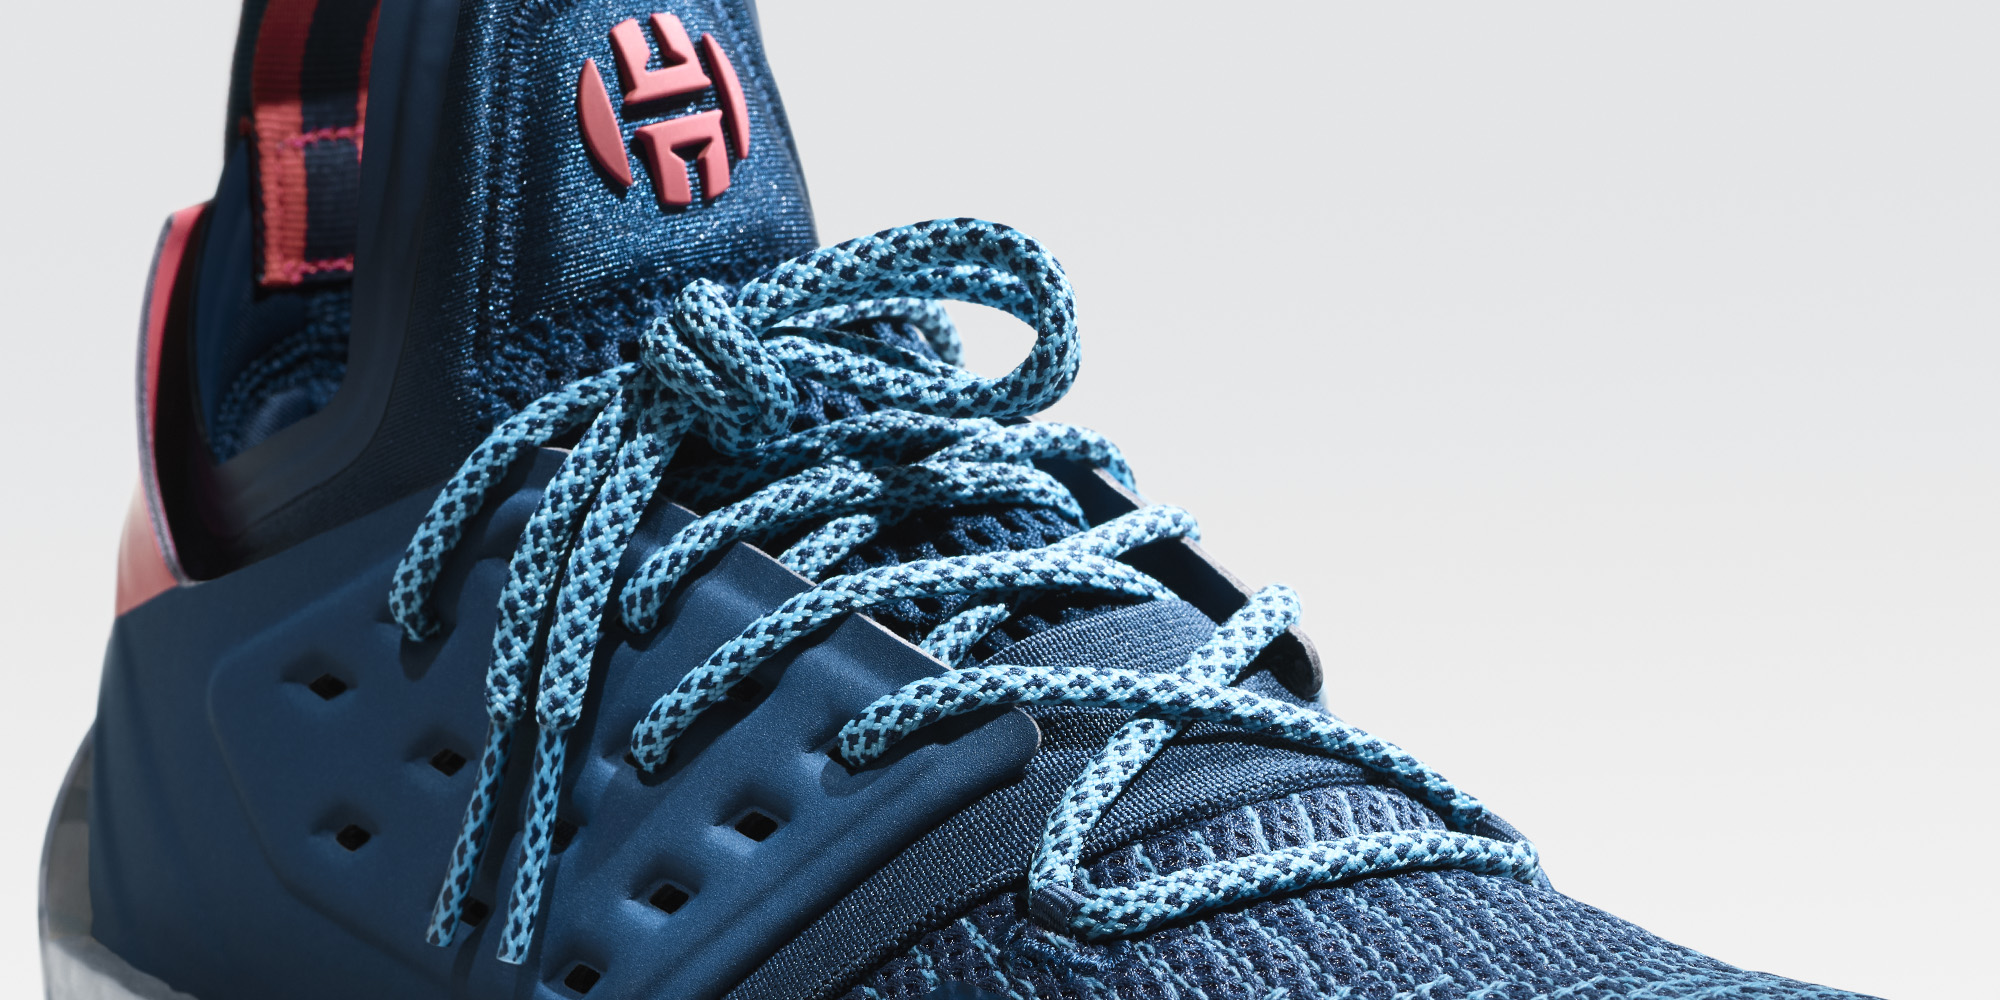 adidas & Two New Harden Vol. 2 Colorways Arrive For the